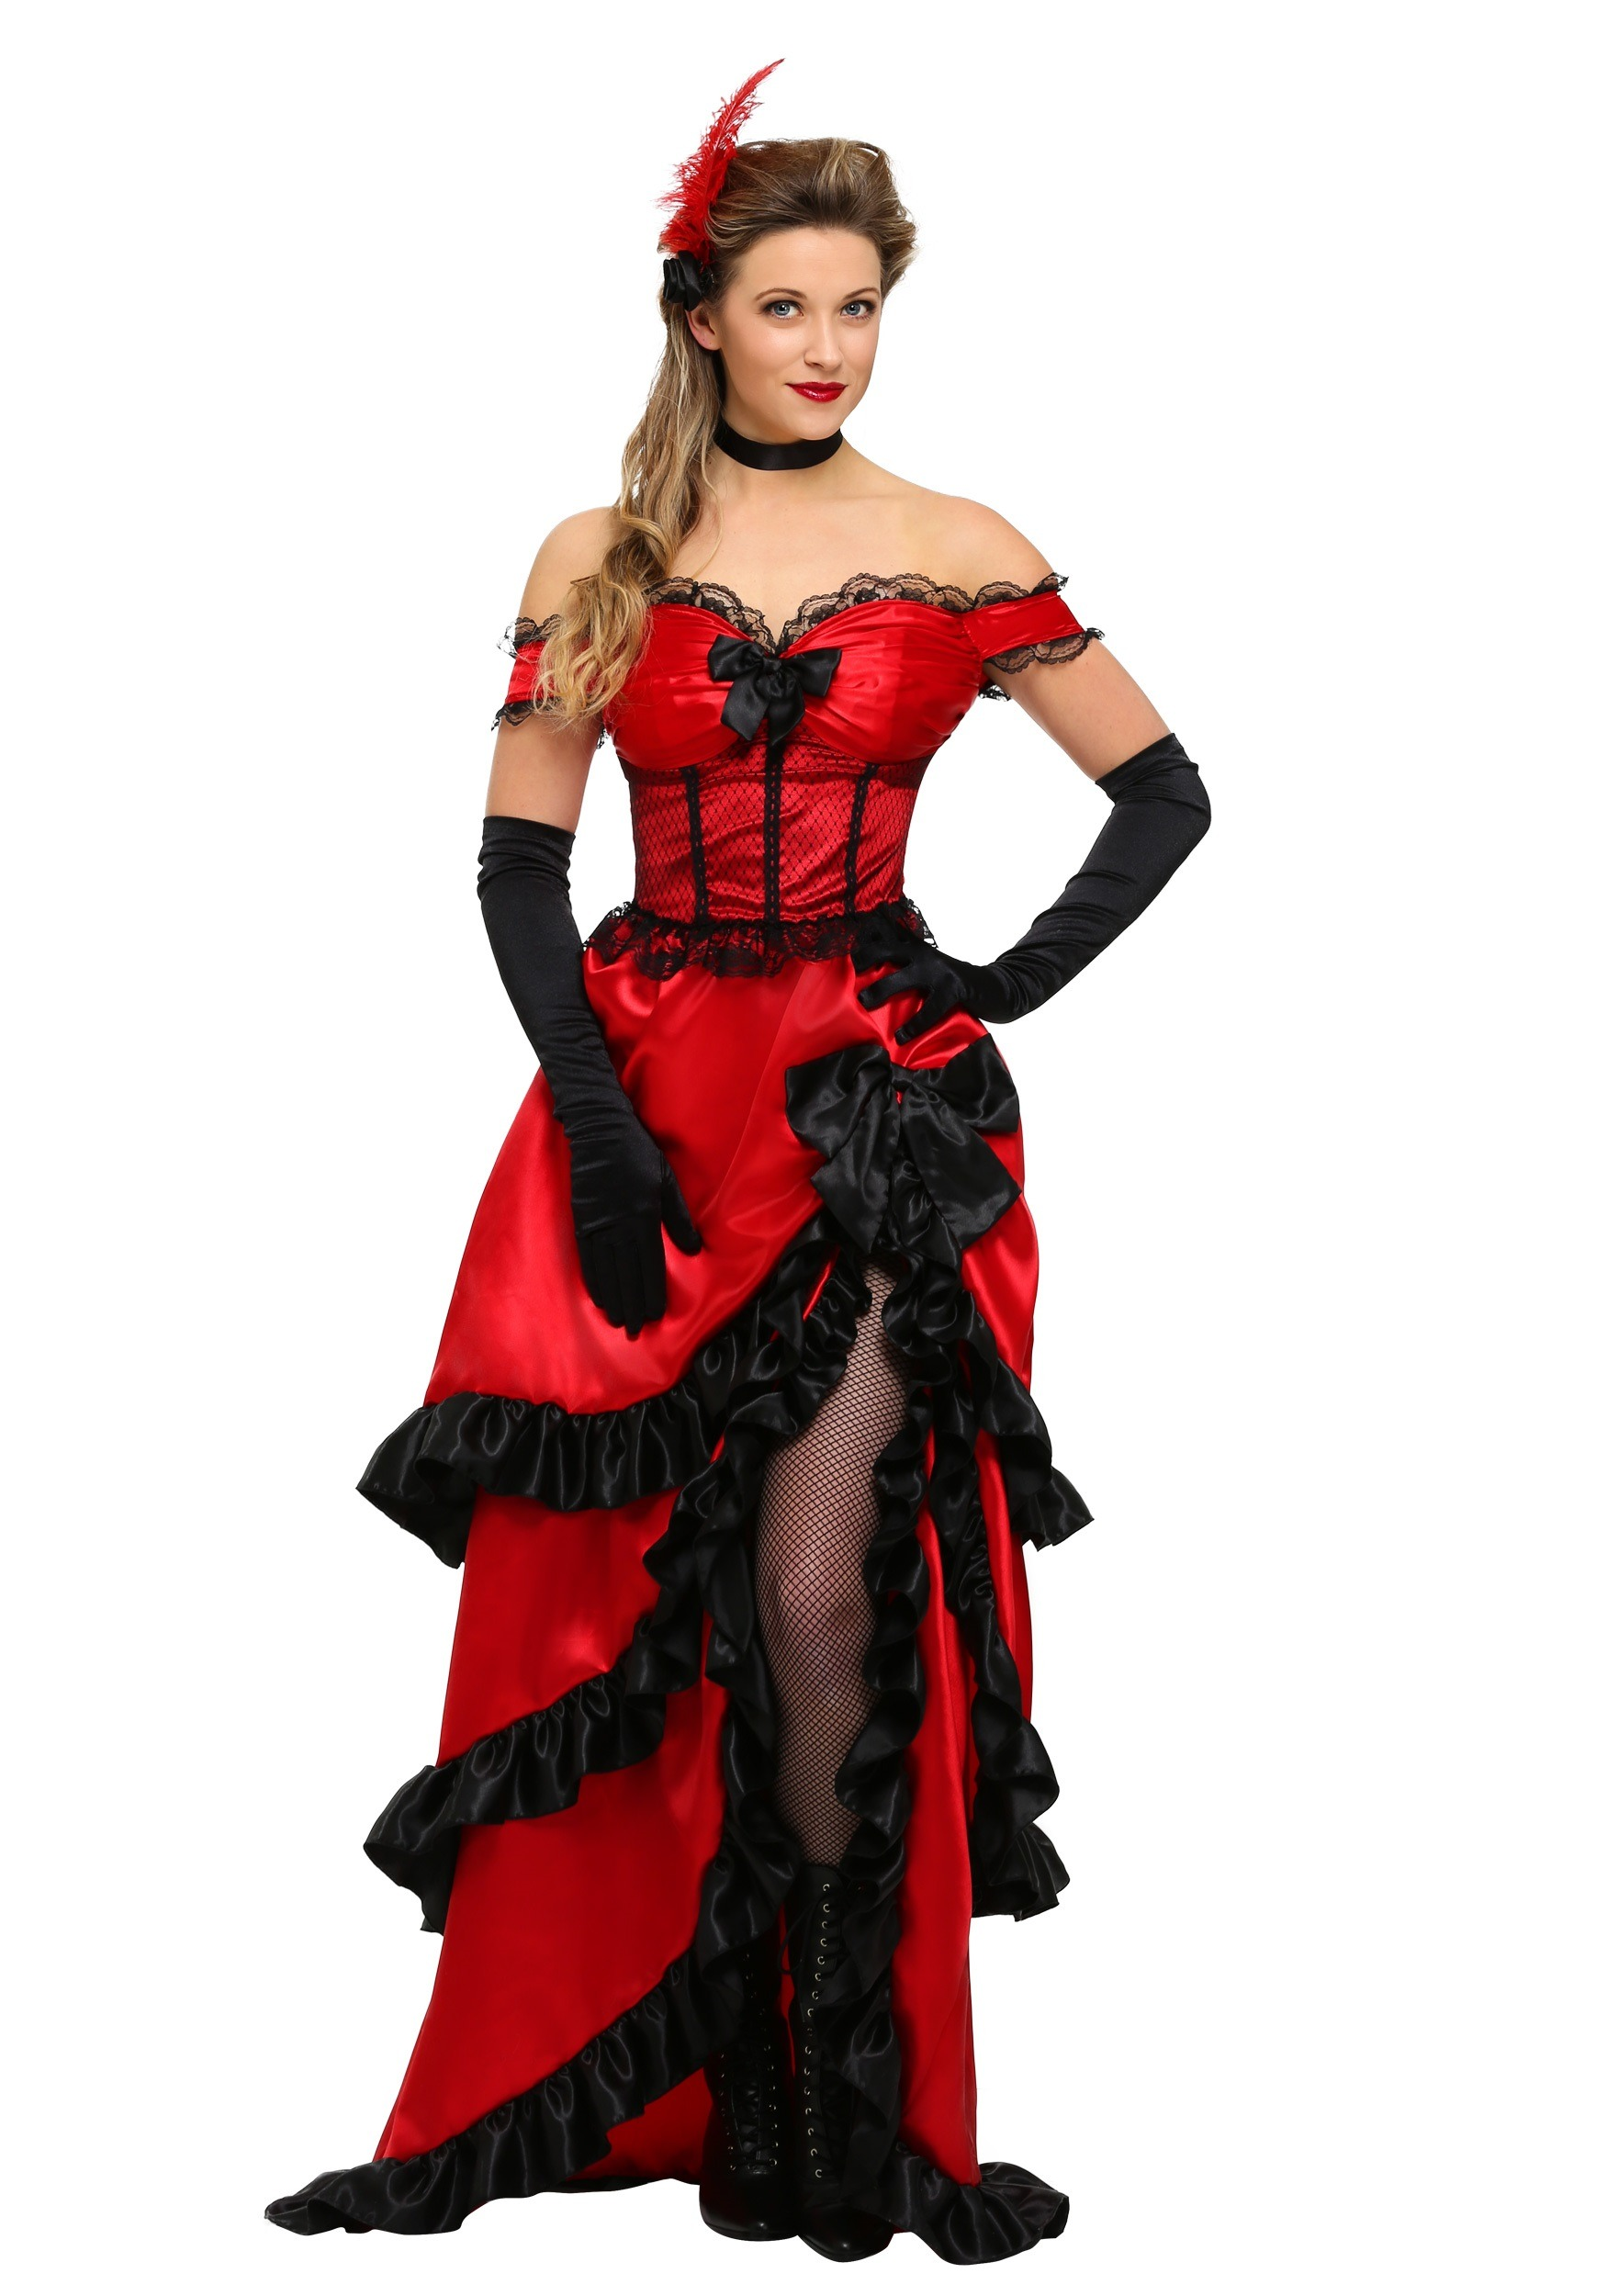 sc 1 st  Halloween Costumes : saloon womens halloween costume  - Germanpascual.Com